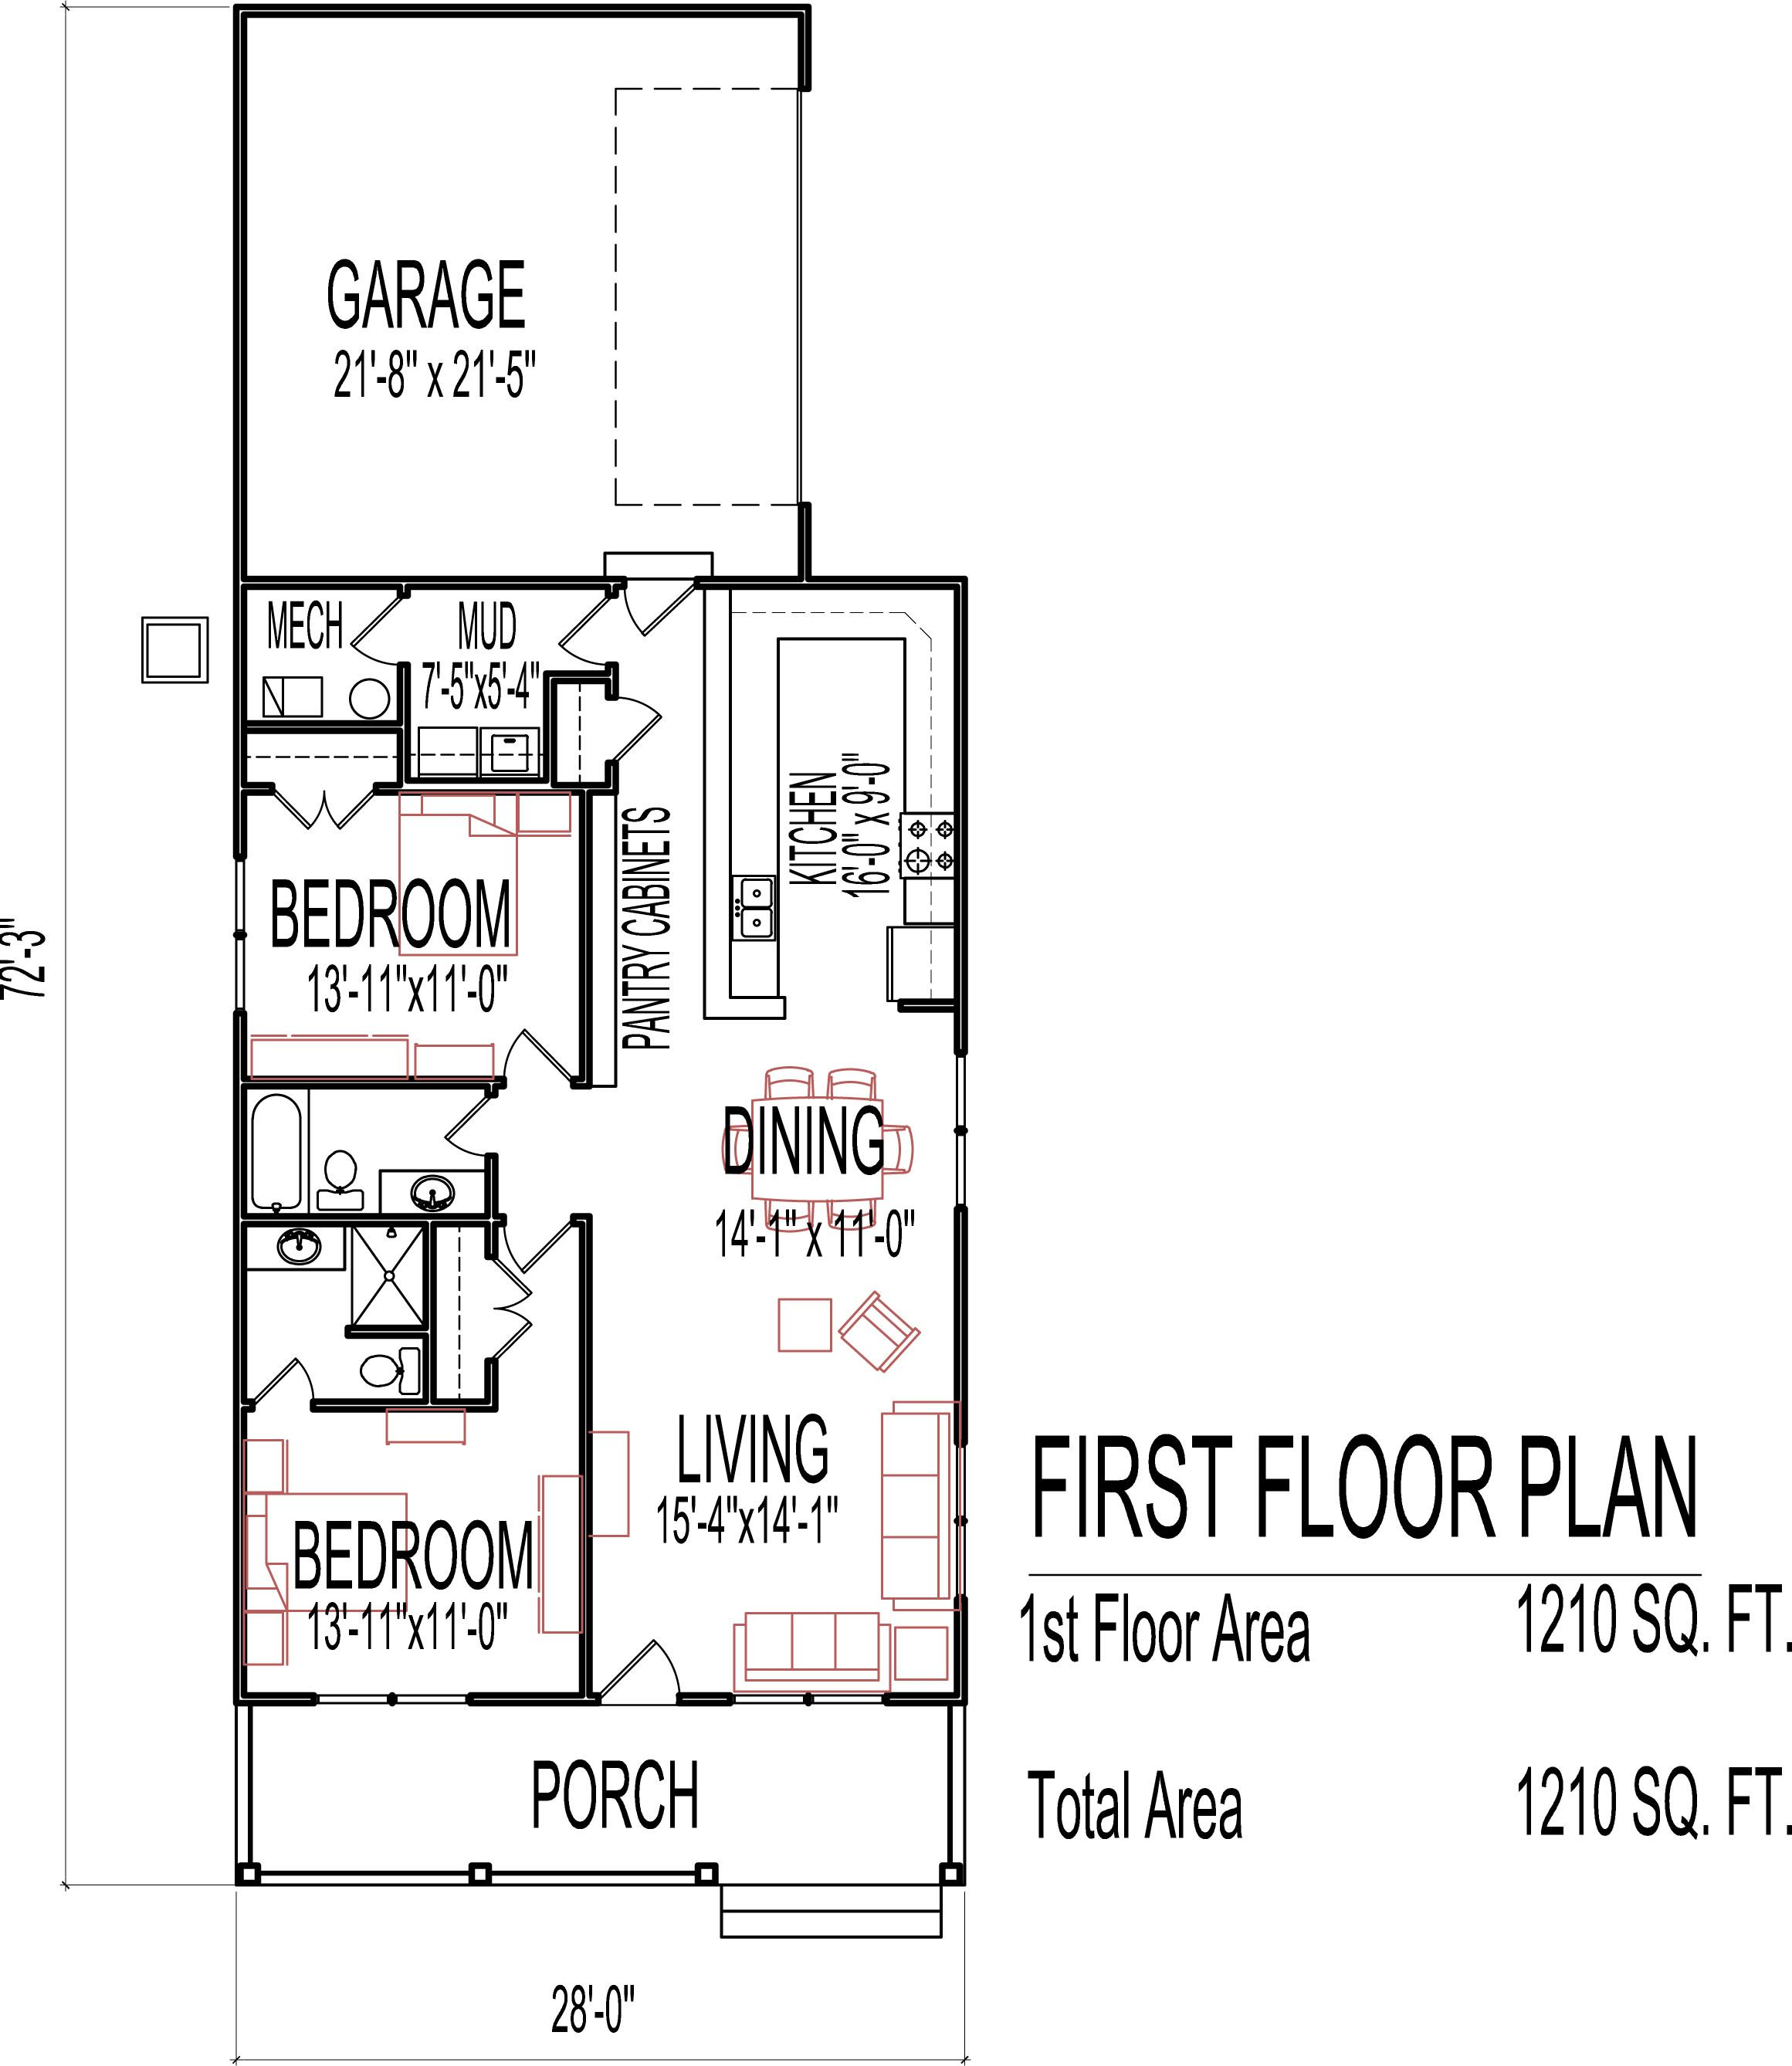 small low cost economical 2 bedroom 2 bath 1200 sq ft single story house floor plans - Single Floor House Plans 2